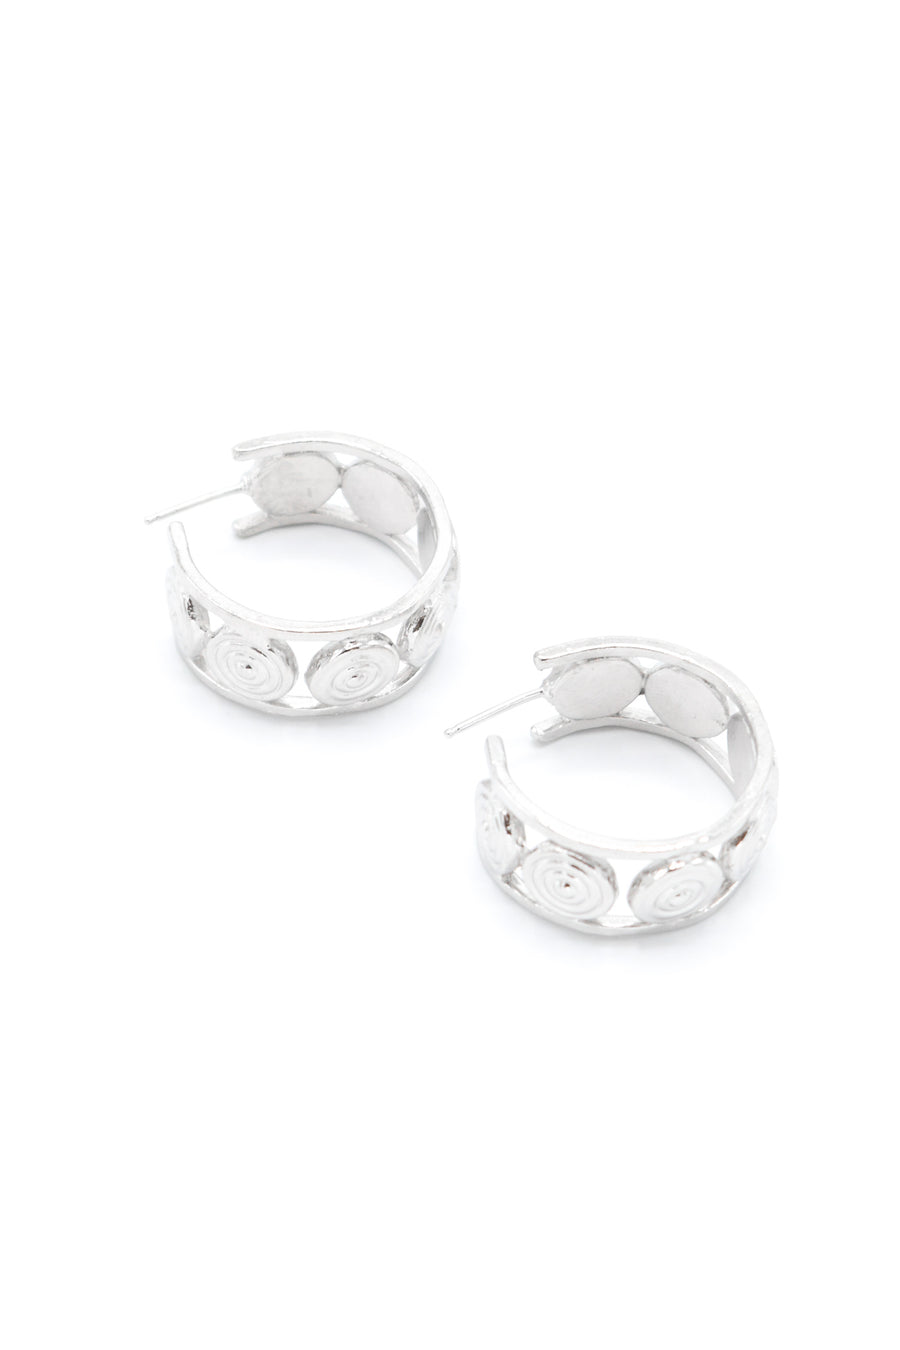 Aluna mini hoop earrings in white gold. Hoops with circular design and are 1 inch in diameter. Handmade by local jewelry designer, Nina Berenato, in Austin, Texas.